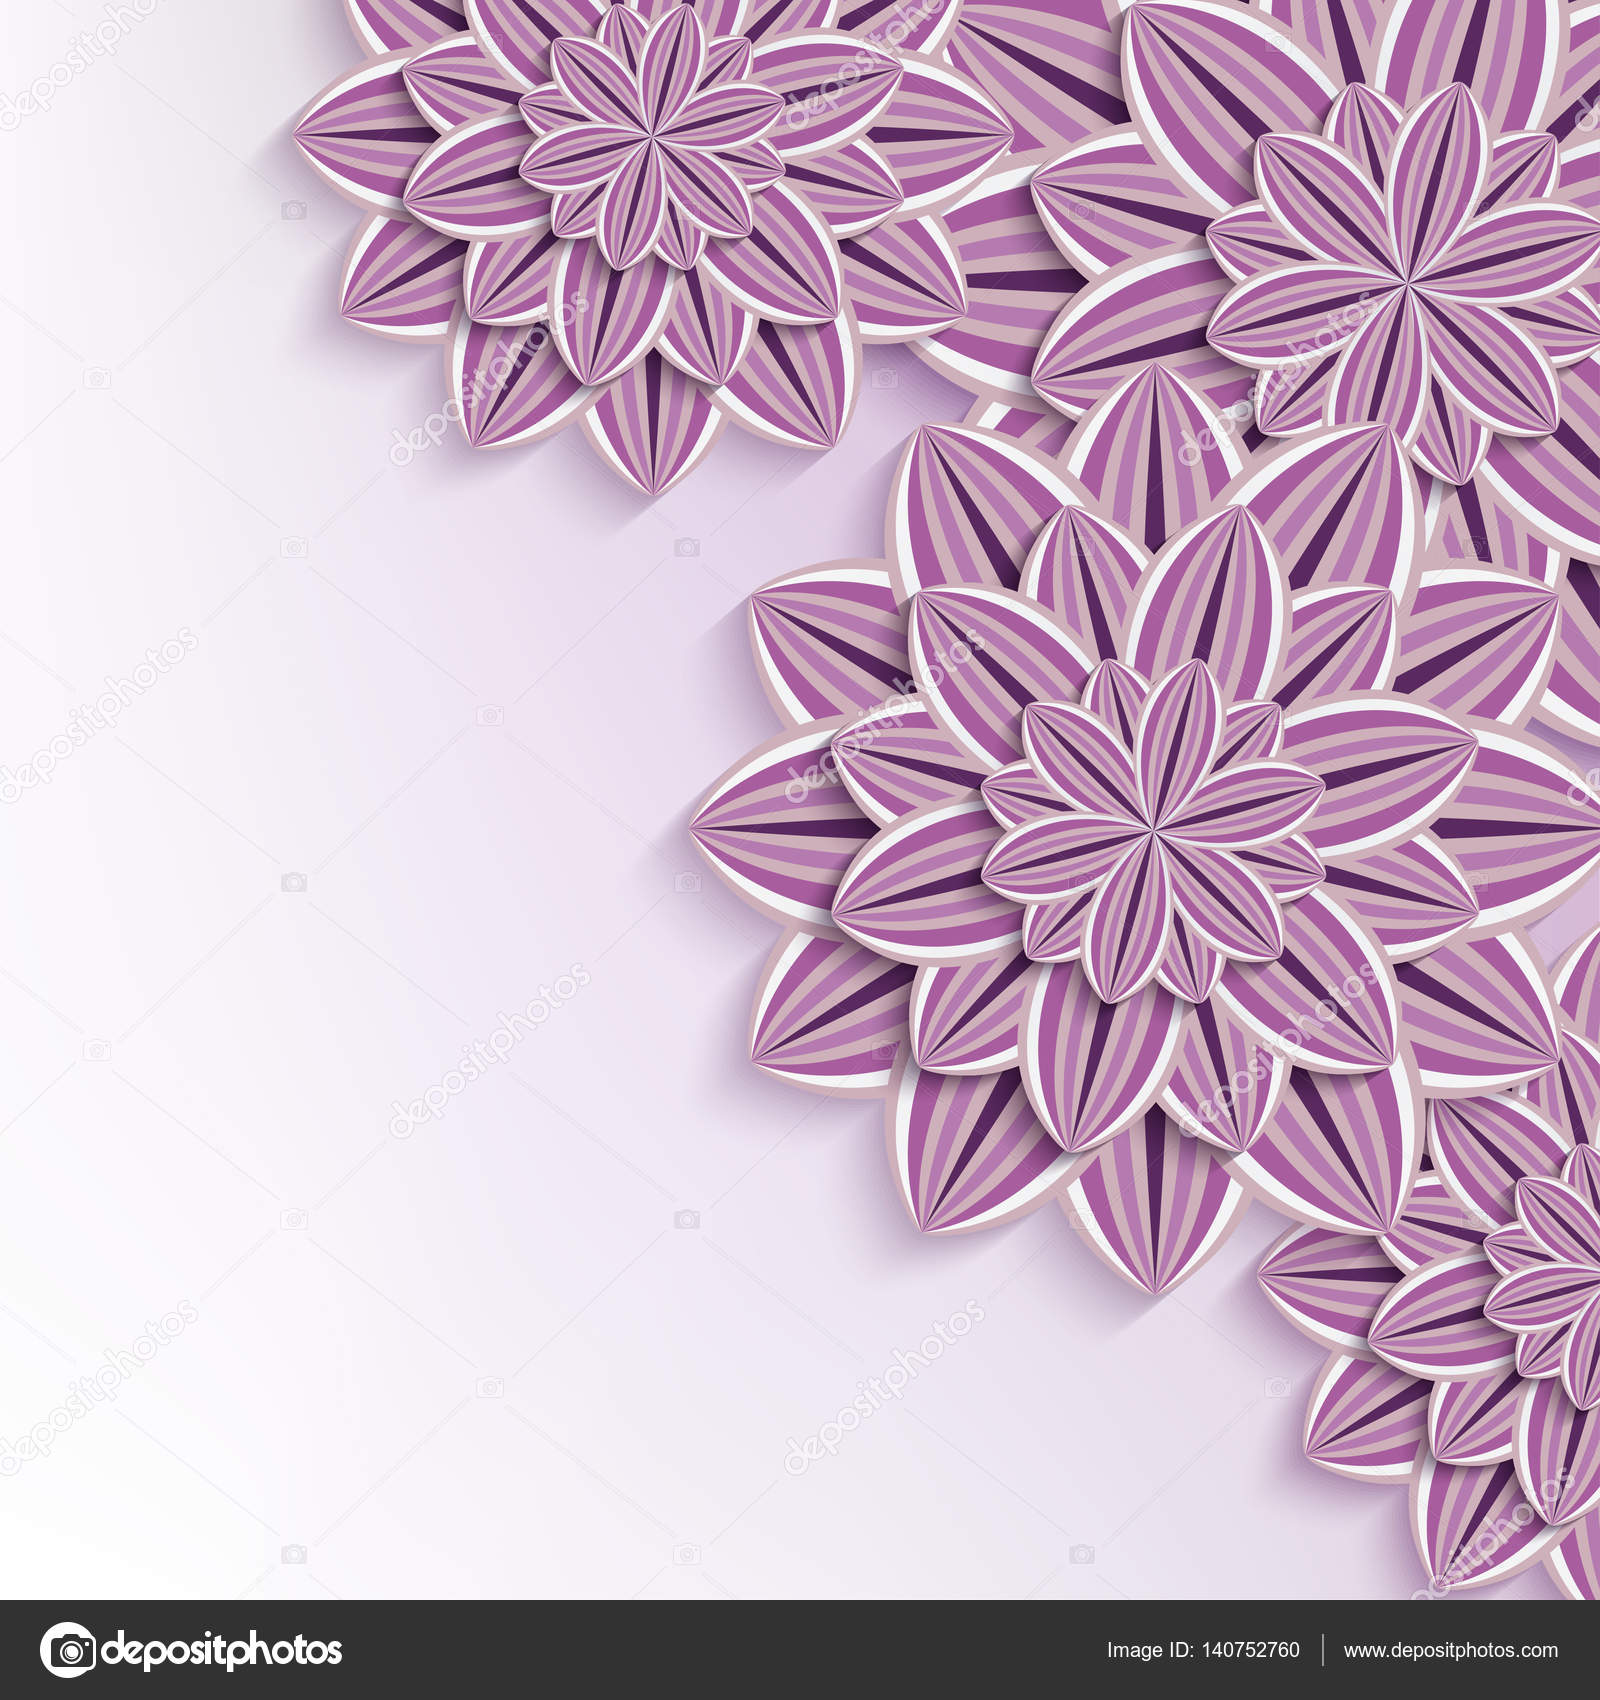 Modern background with 3d paper flowers stock vector silvionka floral elegant background with purple violet ornate 3d flowers dahlia cutting paper beautiful trendy creative wallpaper stylish greeting or invitation mightylinksfo